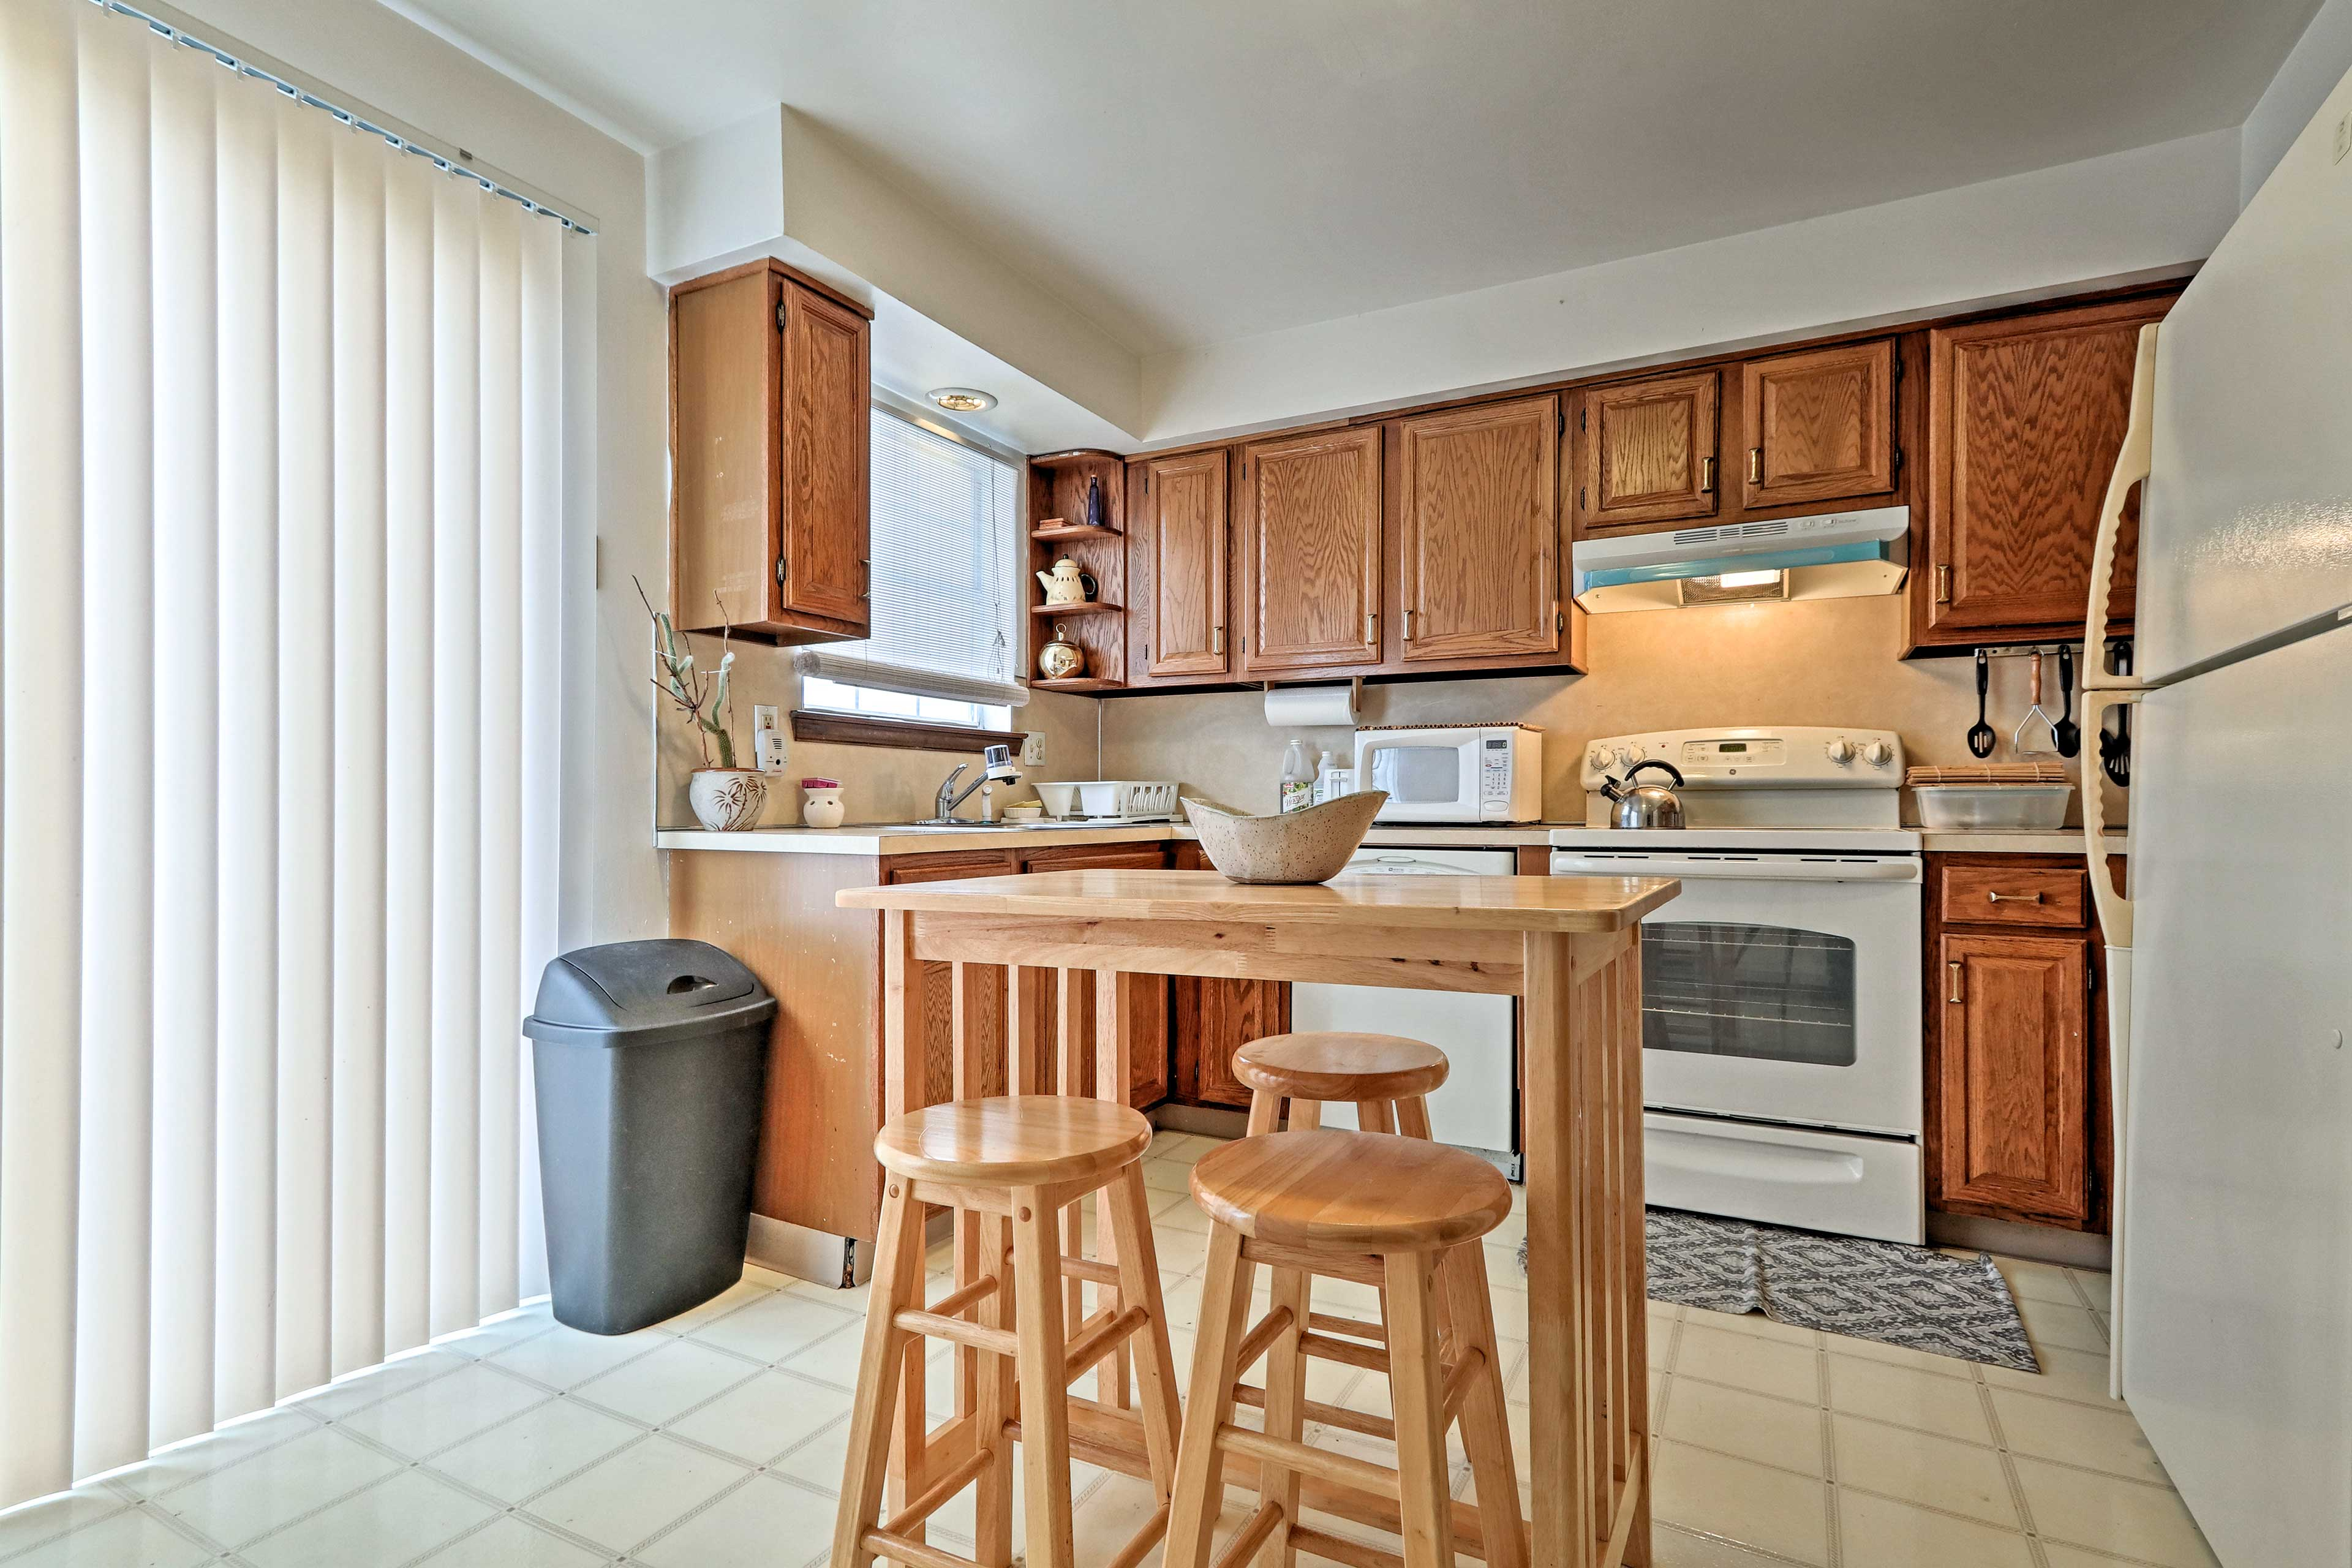 The kitchen comes fully equipped to handle all your favorite recipes.